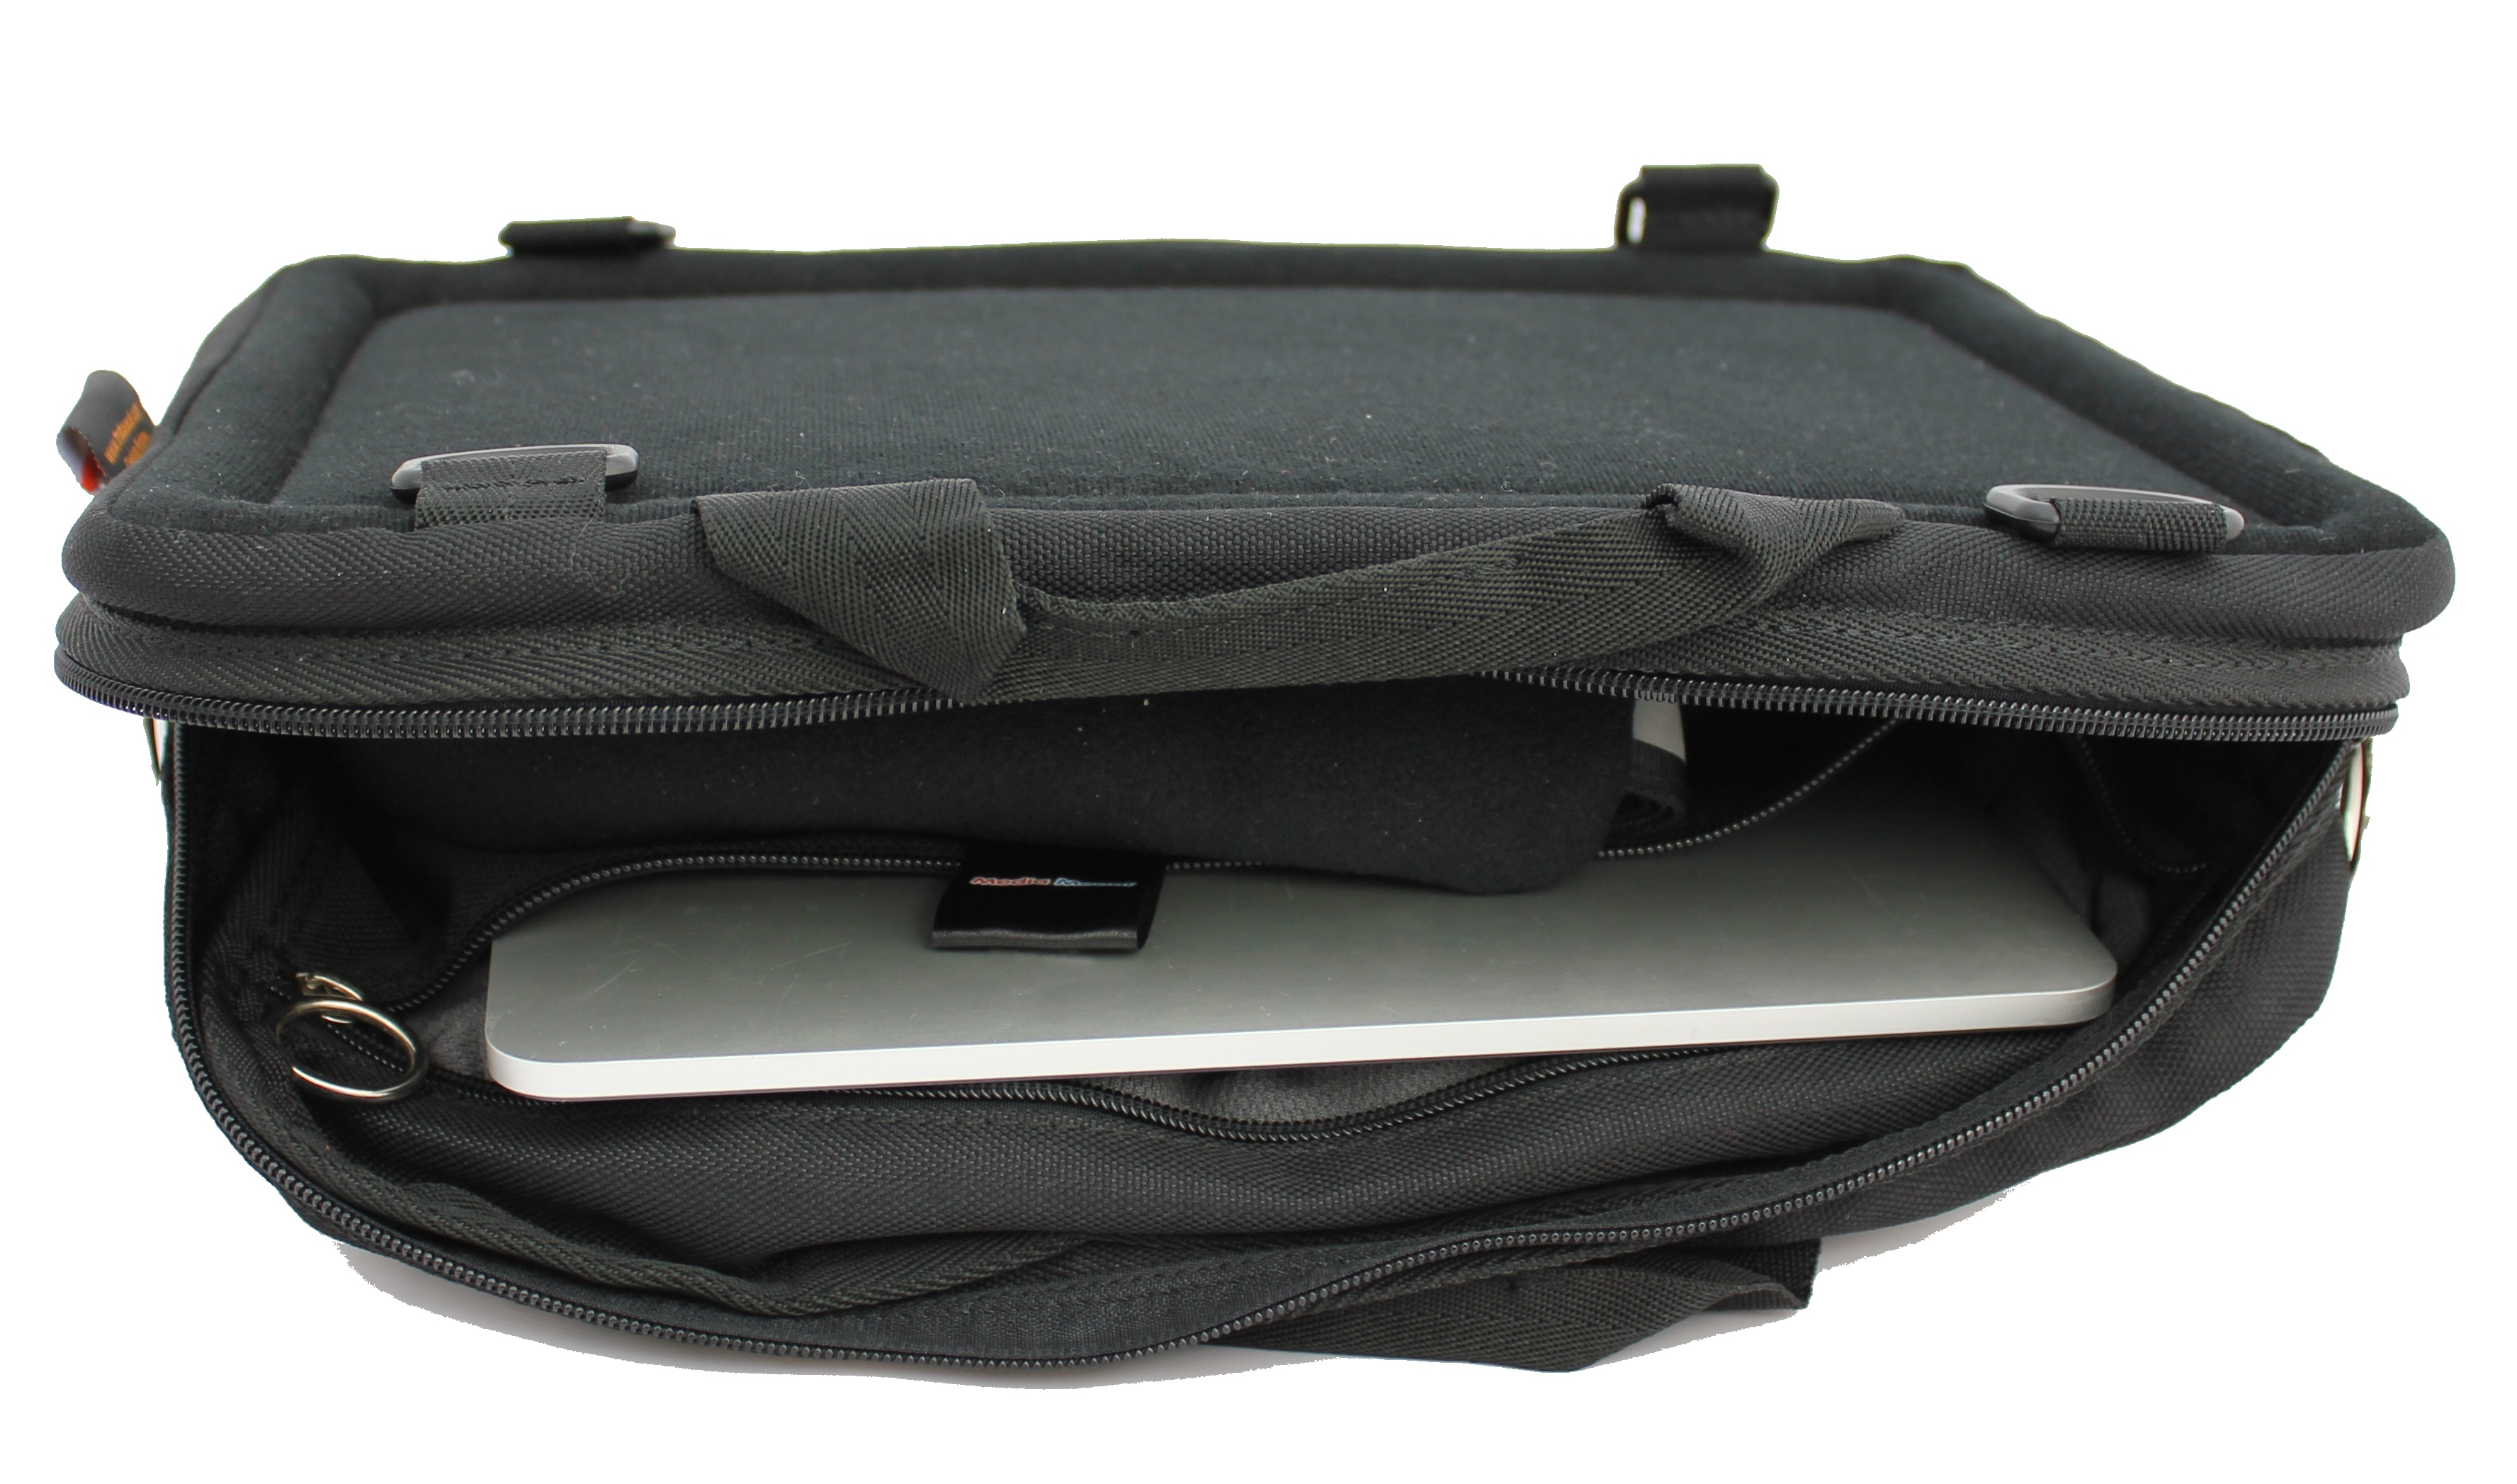 The Trabasack Mini Connect is a black rectangular bag, which opens along a long edge of the rectangle. Inside it there is an ipad visible. The surface of the bag looks slightly soft (due to the velcro surfacing) and the bag has lots of D rings visible round the edges.